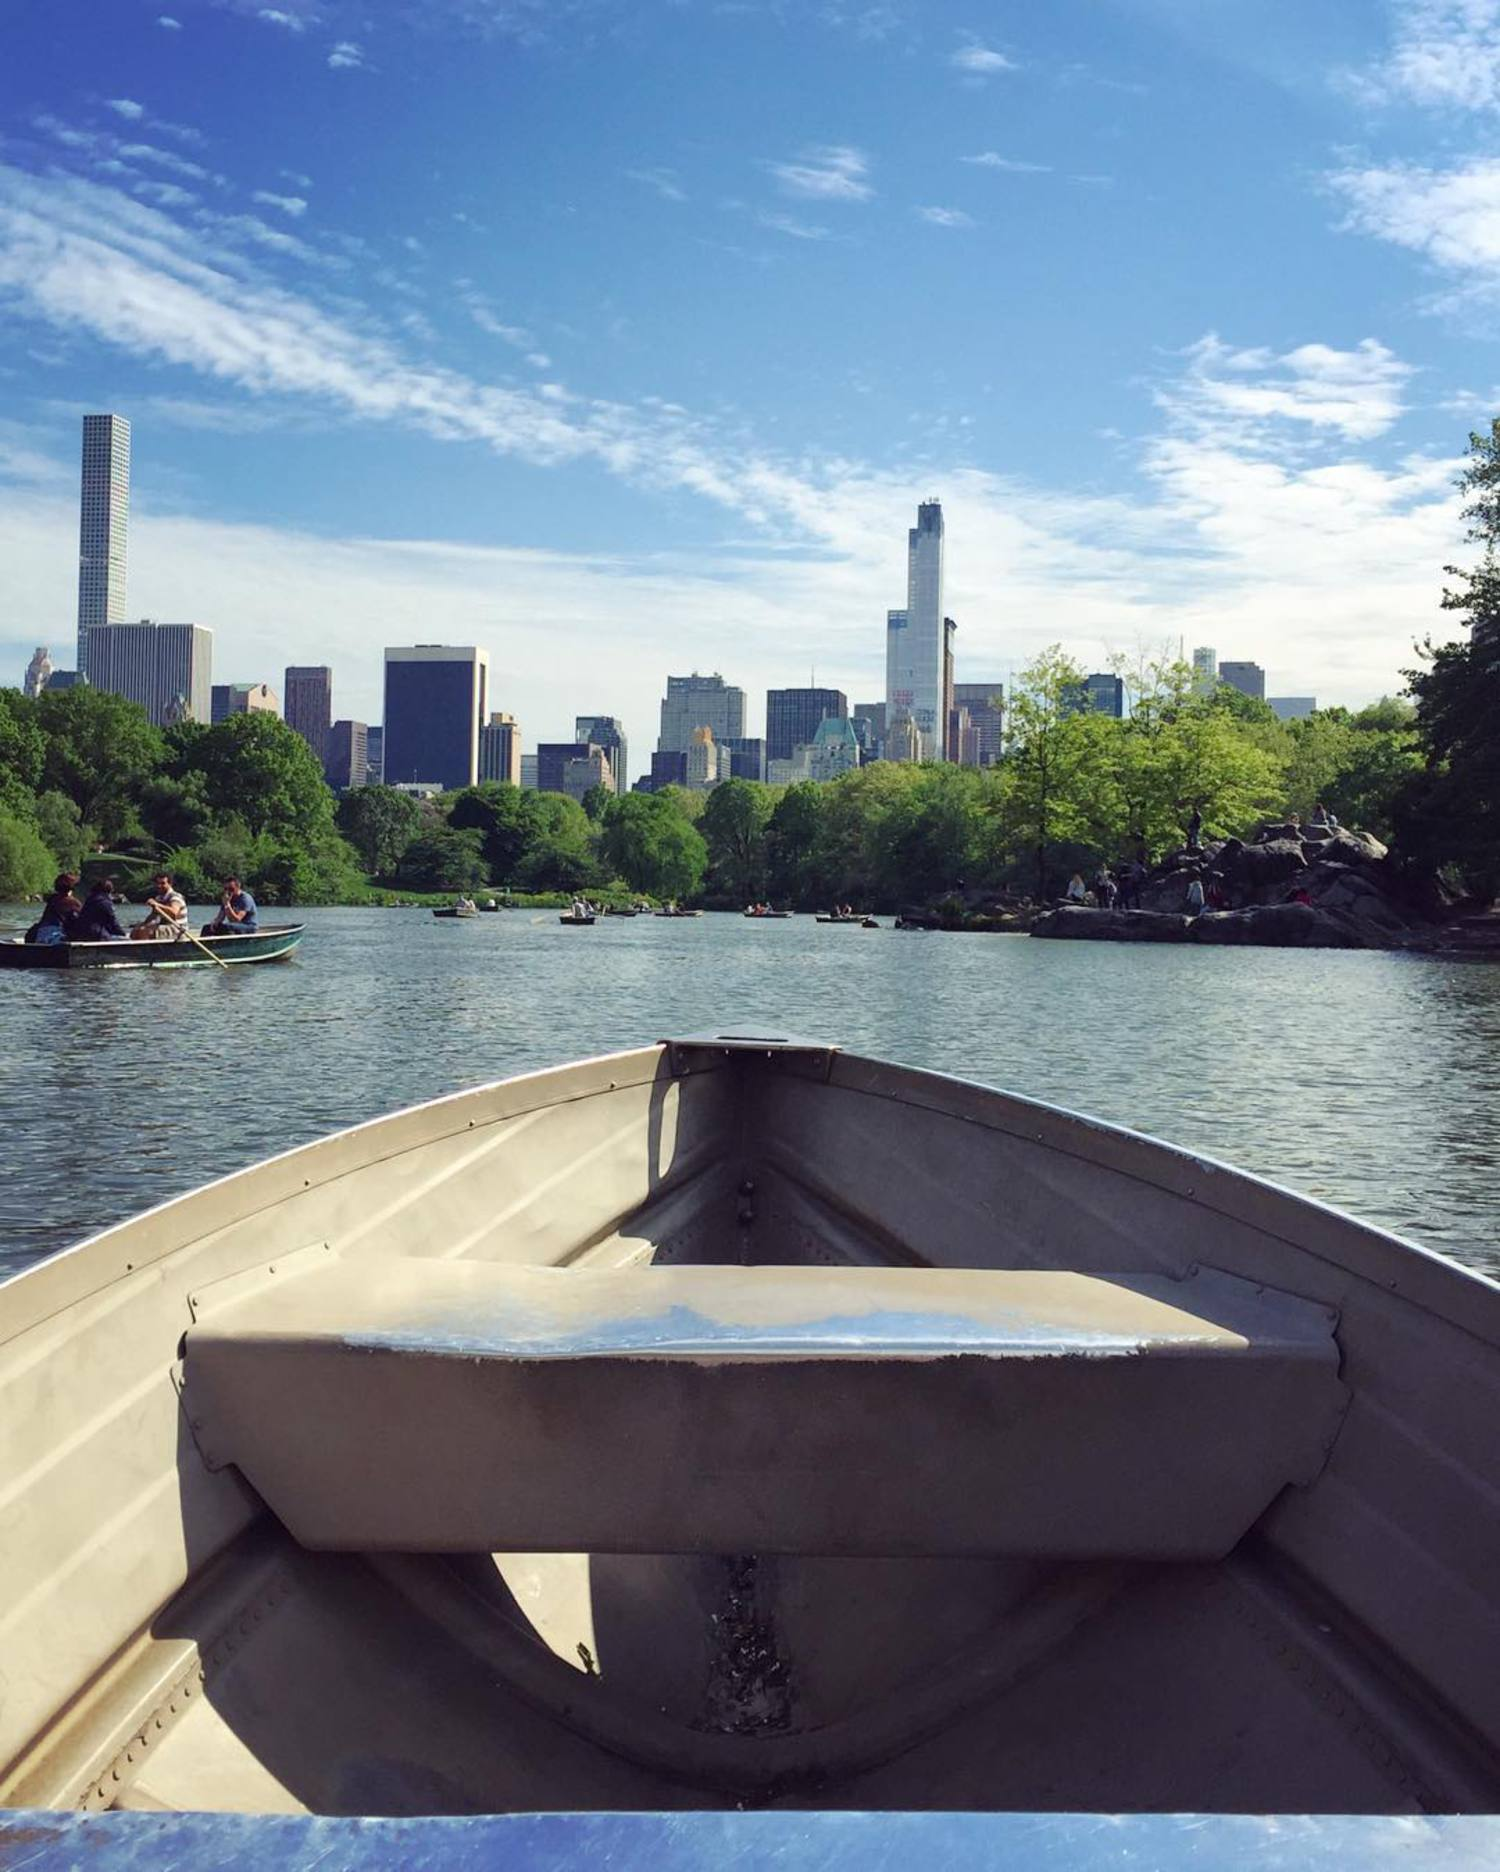 Canoe even believe this weather?! Beautiful day here in NYC! 🚣🏼☀️🌳🏙